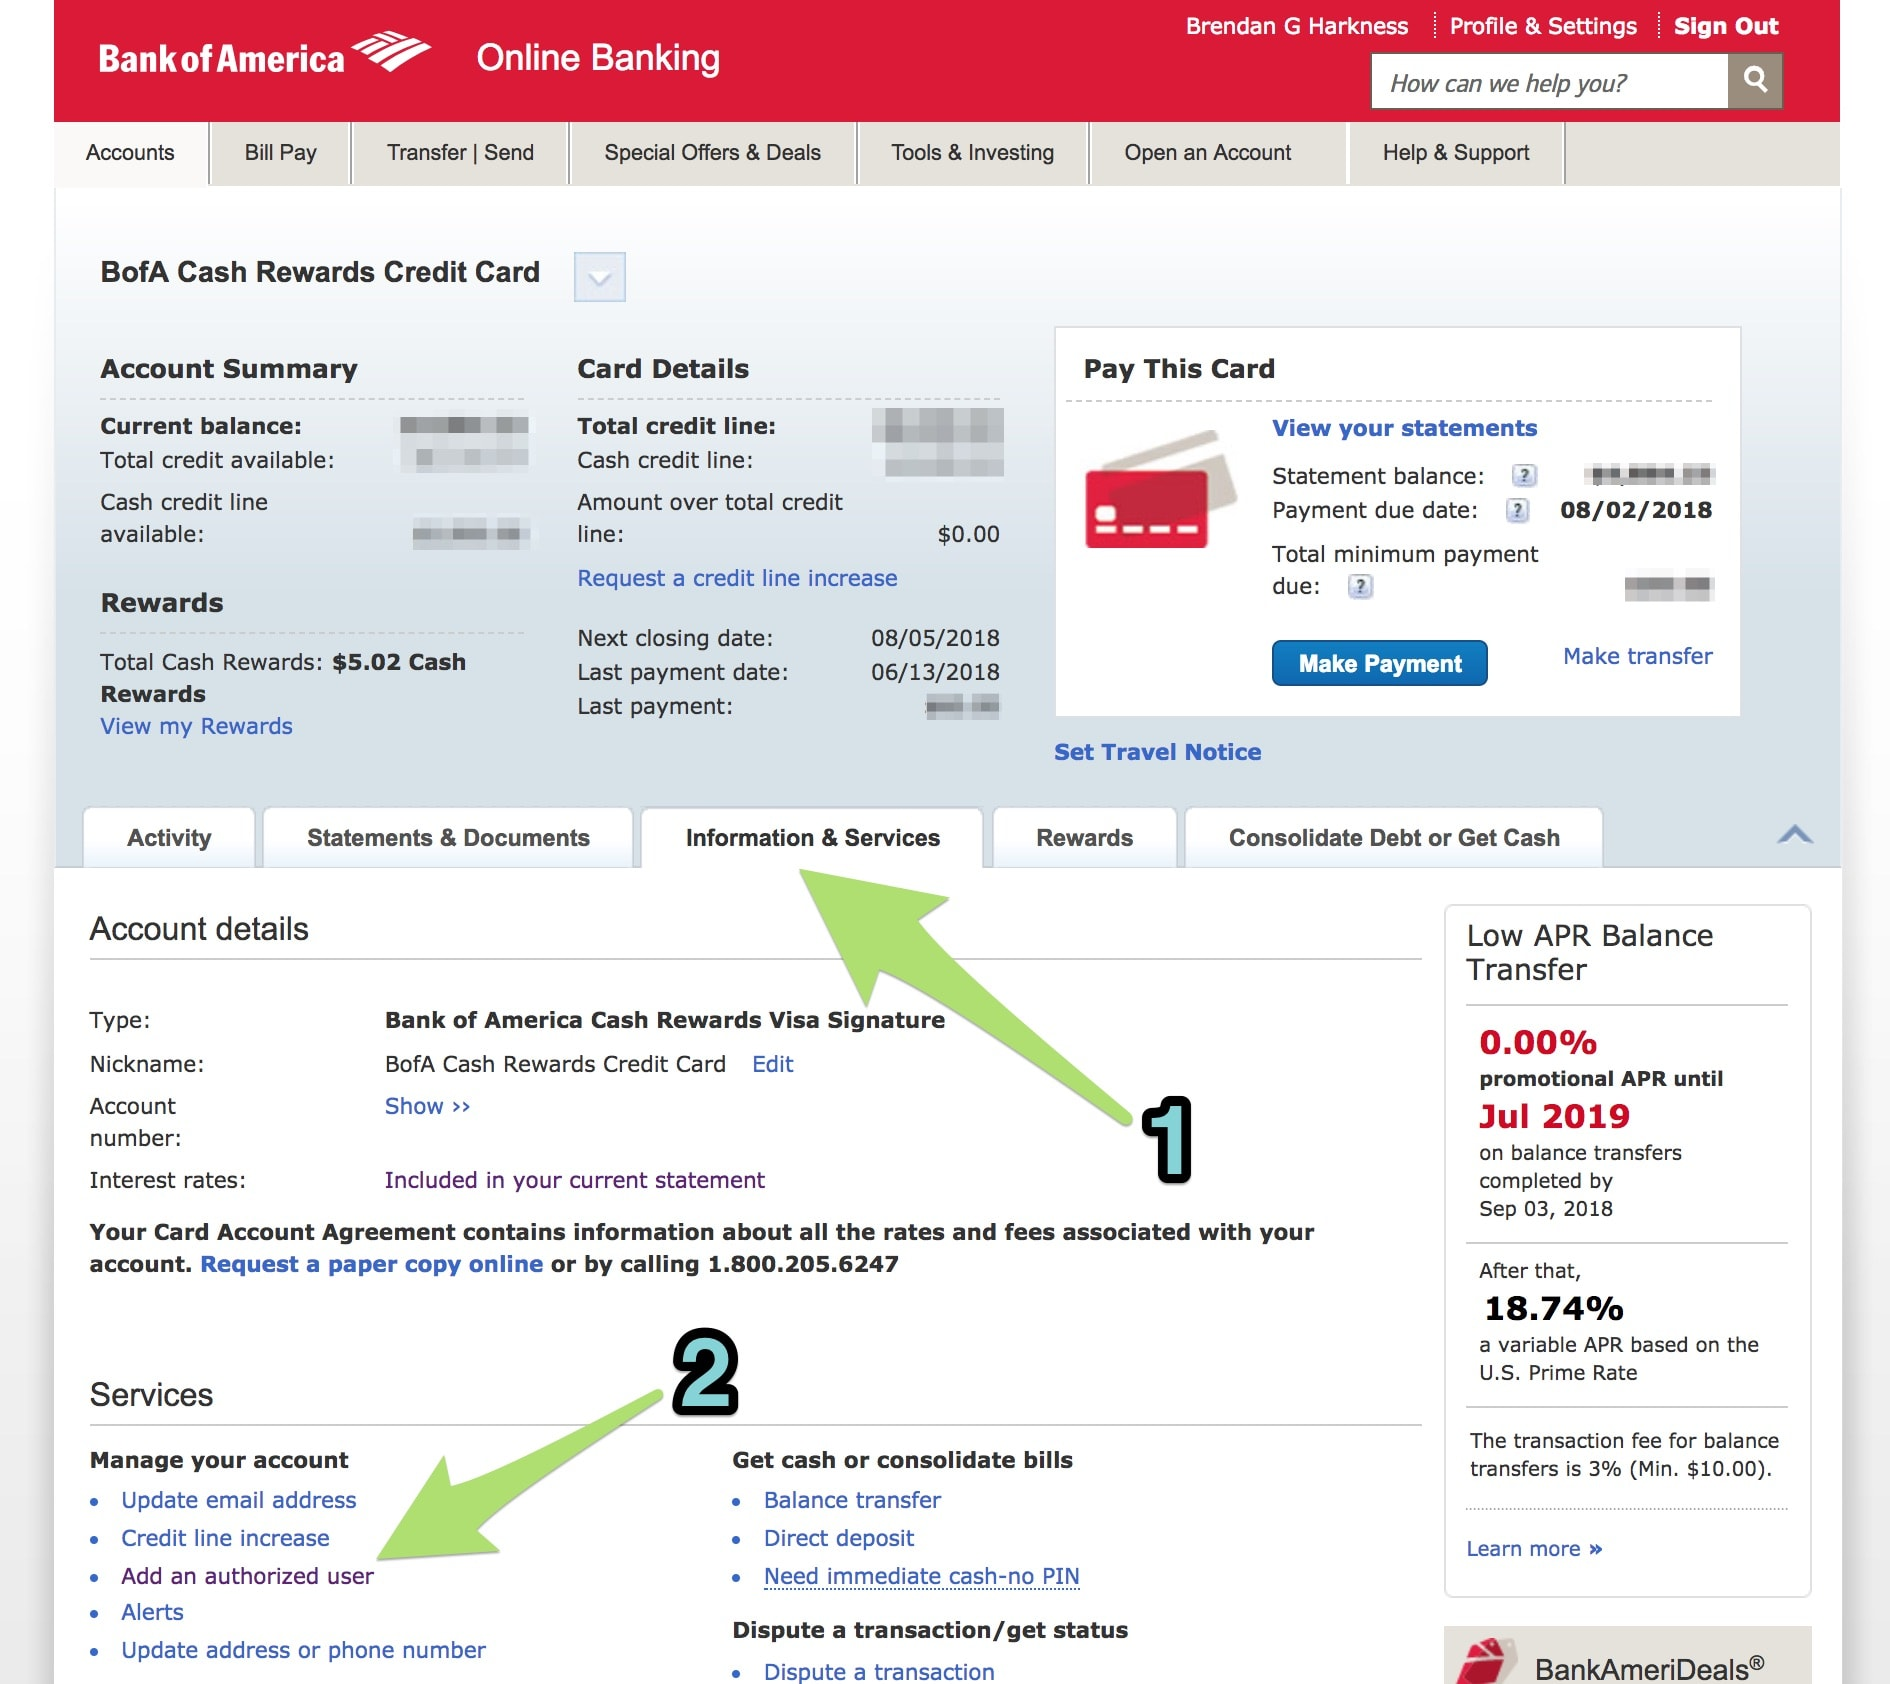 Adding an authorized user for a Bank of America card.